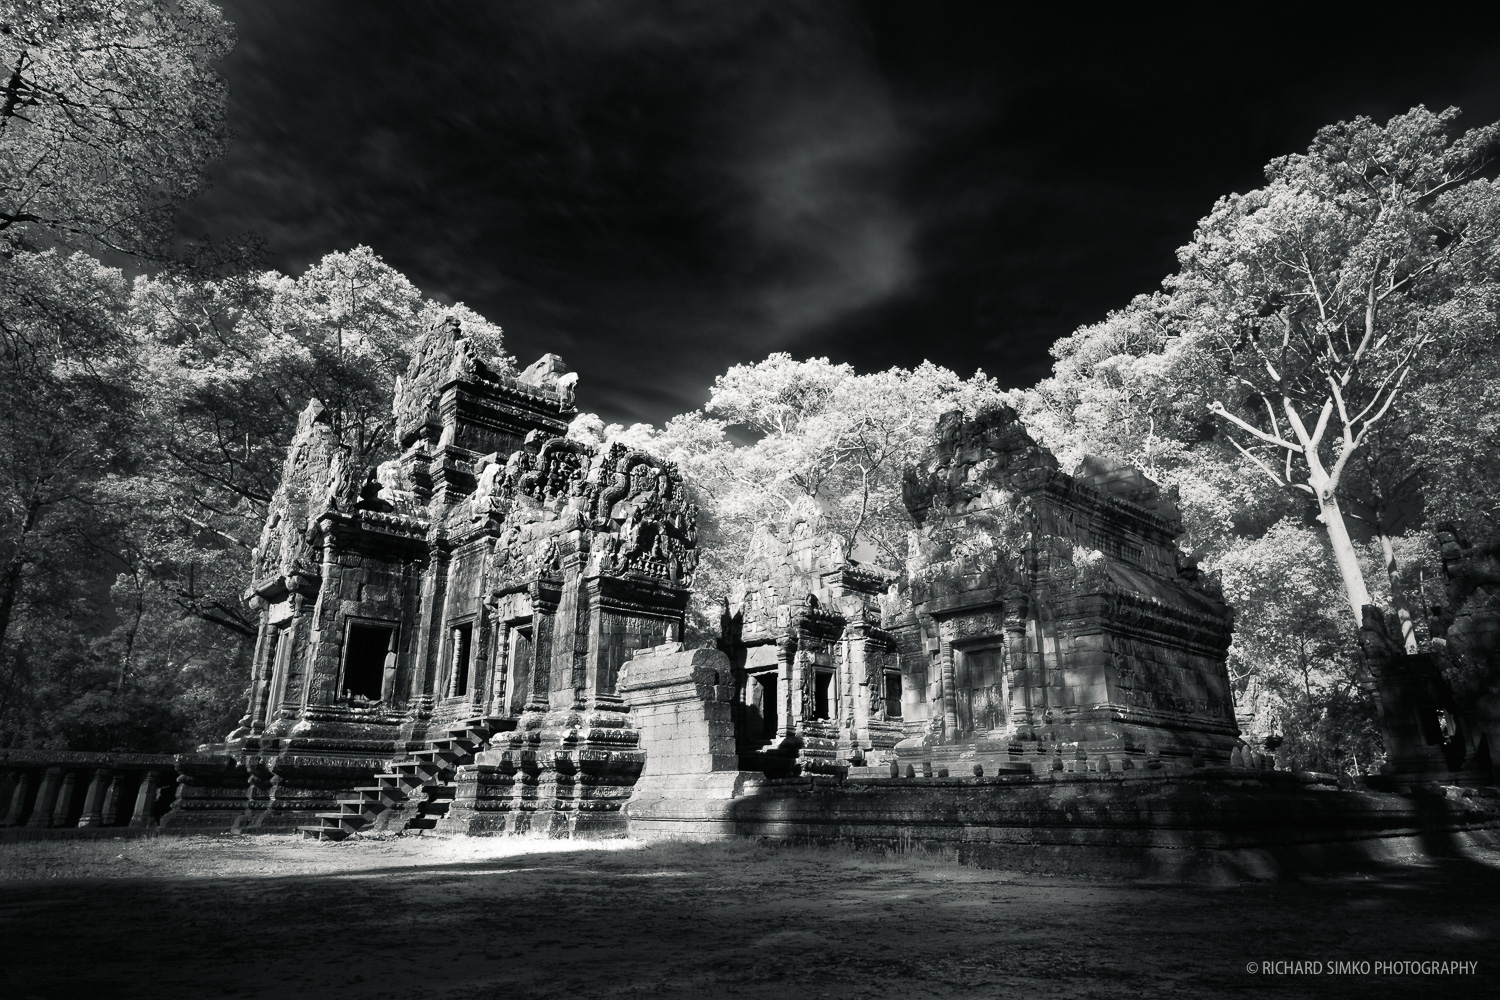 One of smaller temple in Angkor Thom complex.  Fujifilm X-T1, Fujinon 14mm   2.8 + Kenko IR filter